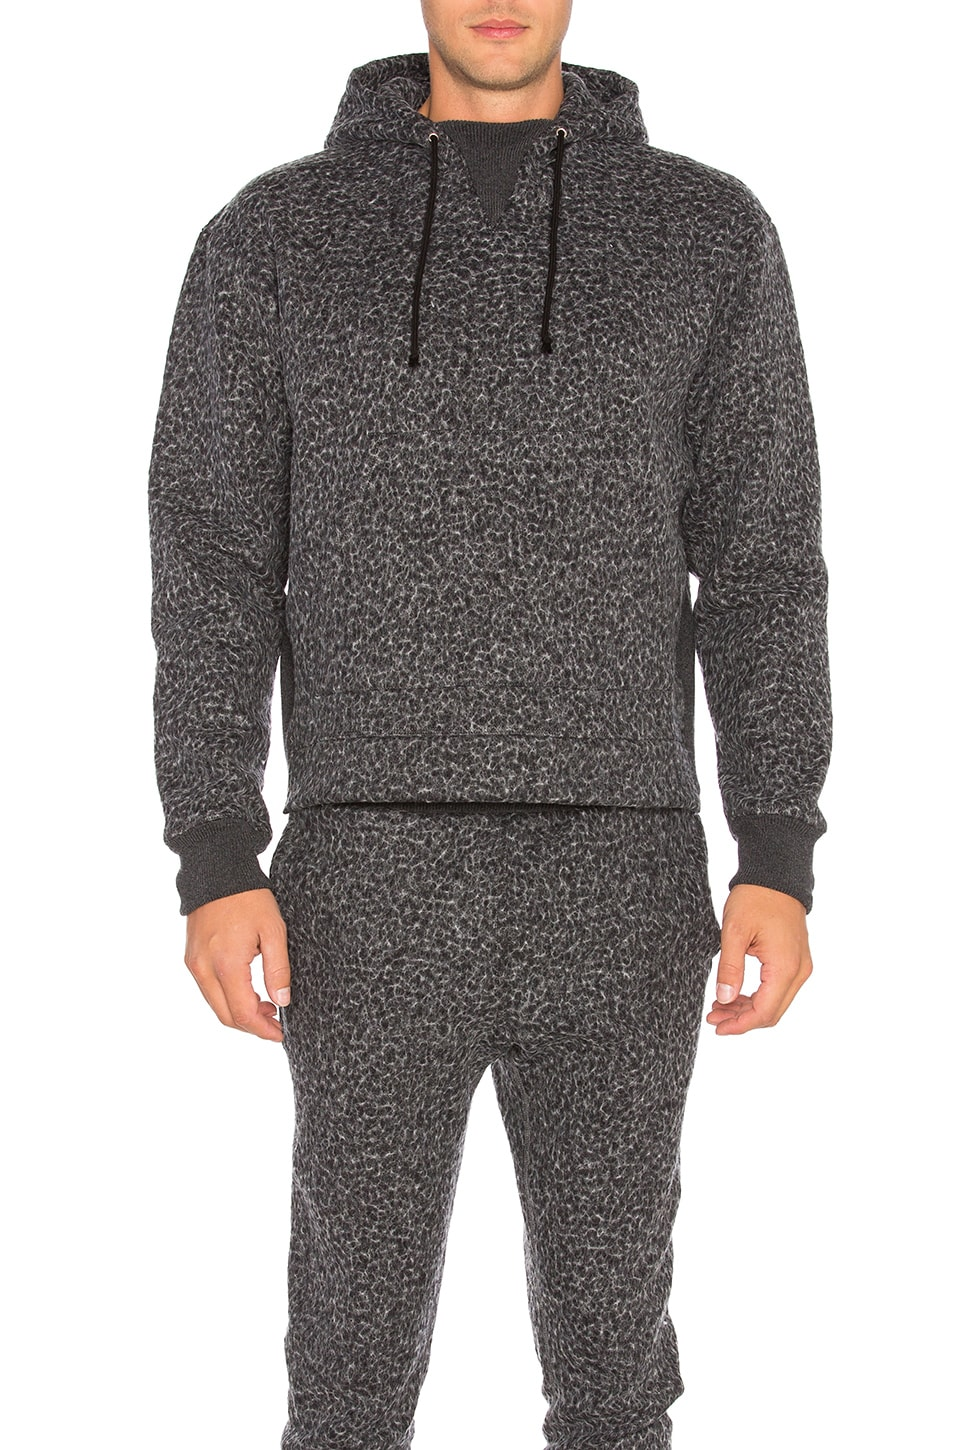 Gauze Terry Kake Mock Pullover by JOHN ELLIOTT